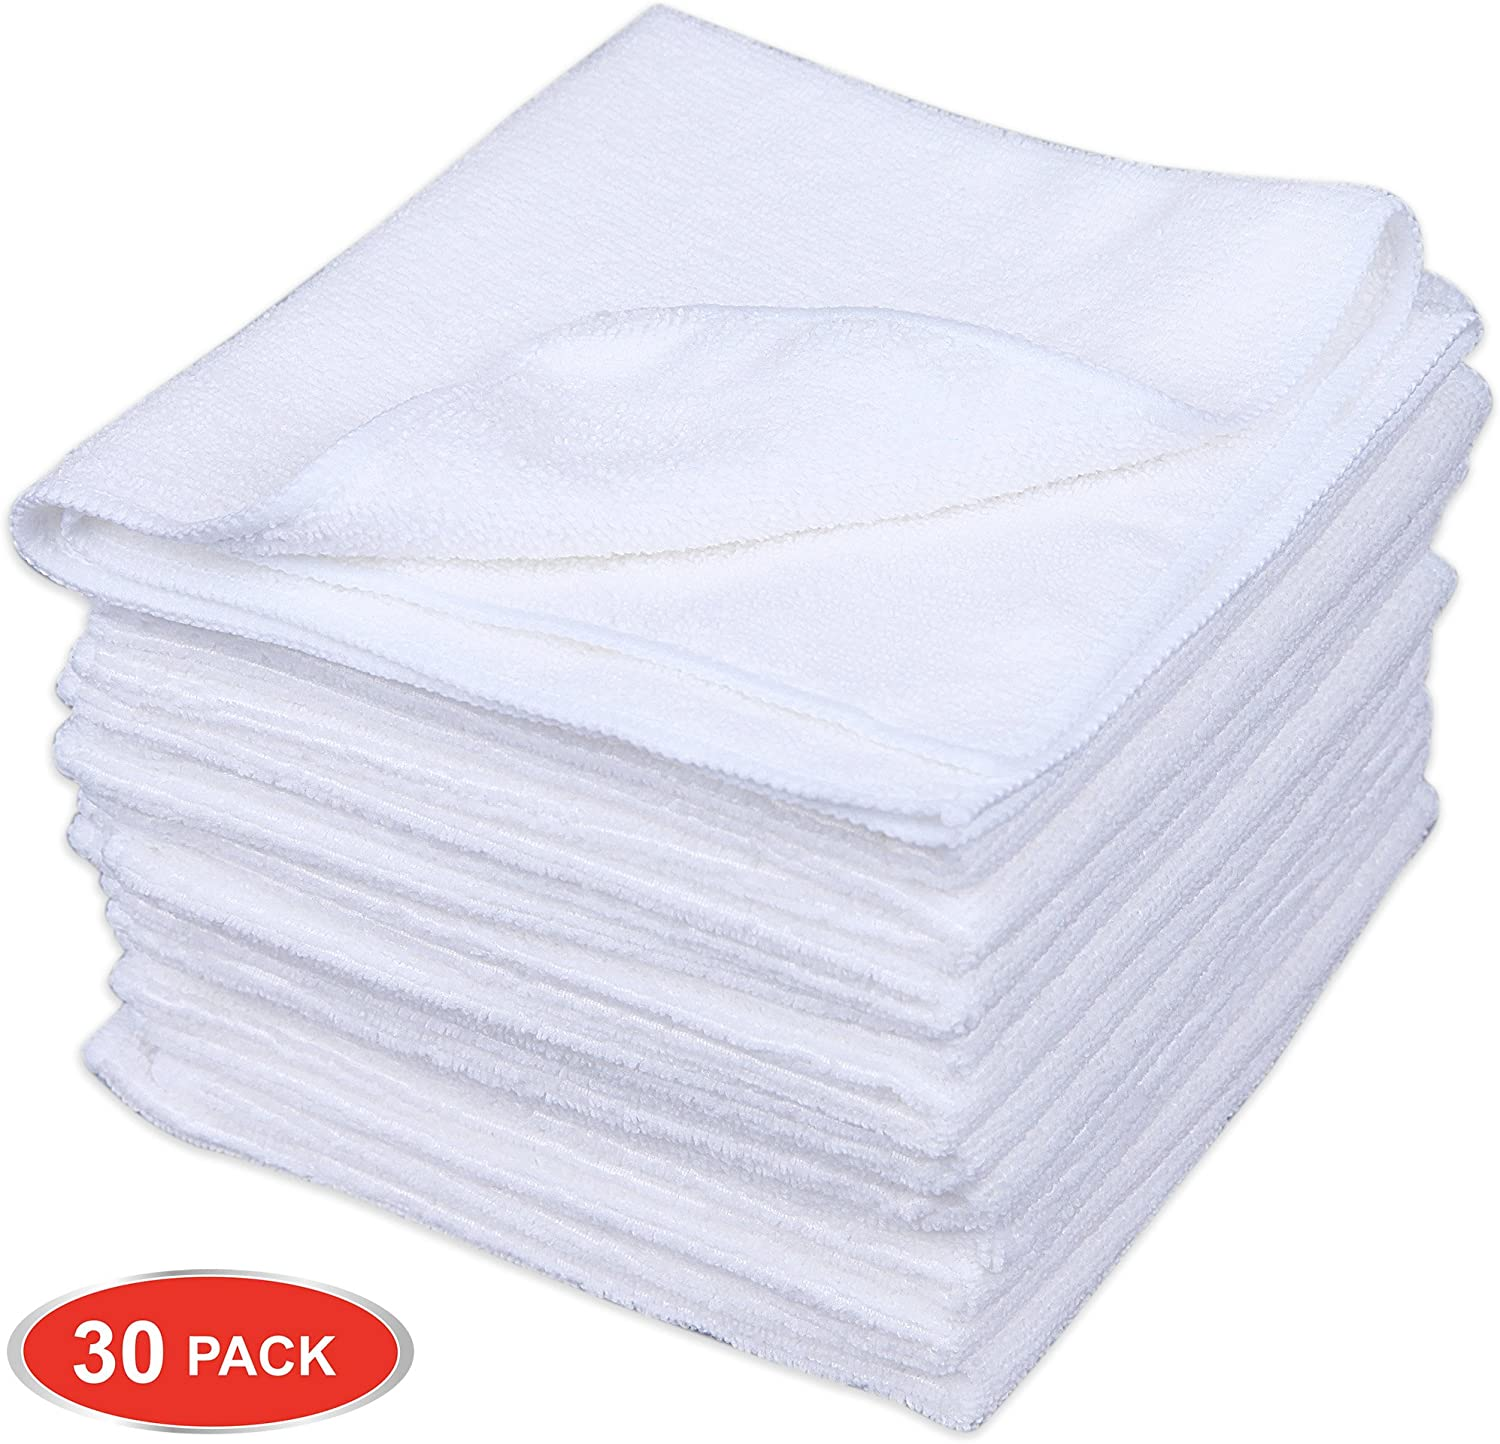 CARTMAN Microfiber Cleaning Cloth in White Color 14 in x 14 in, 30pk (White)